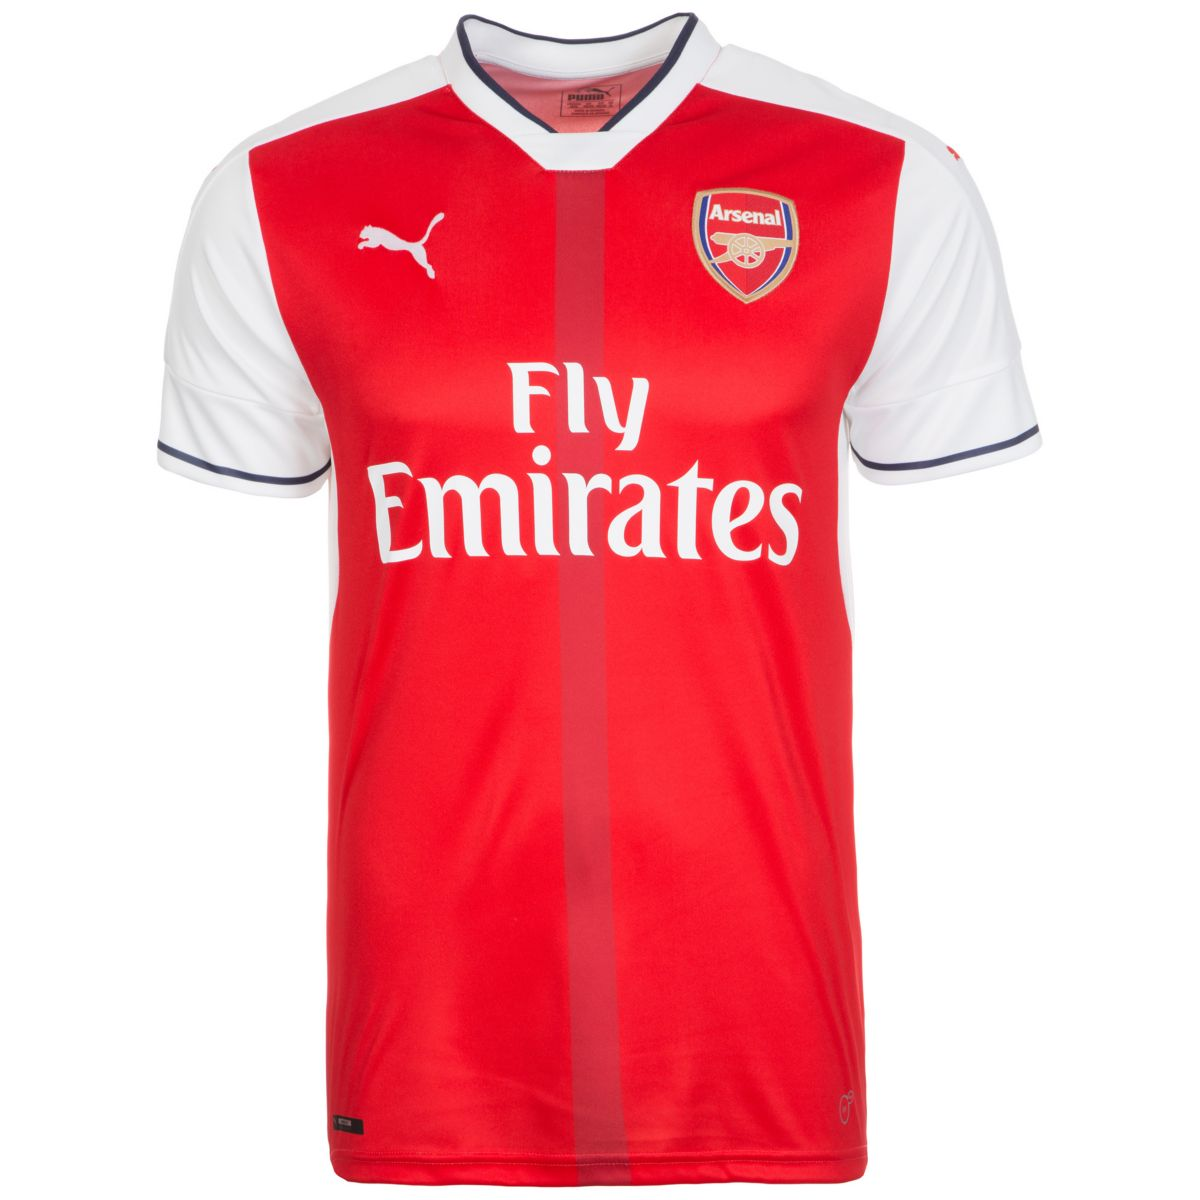 PUMA Arsenal London Trikot Home 2016/2017 Herren